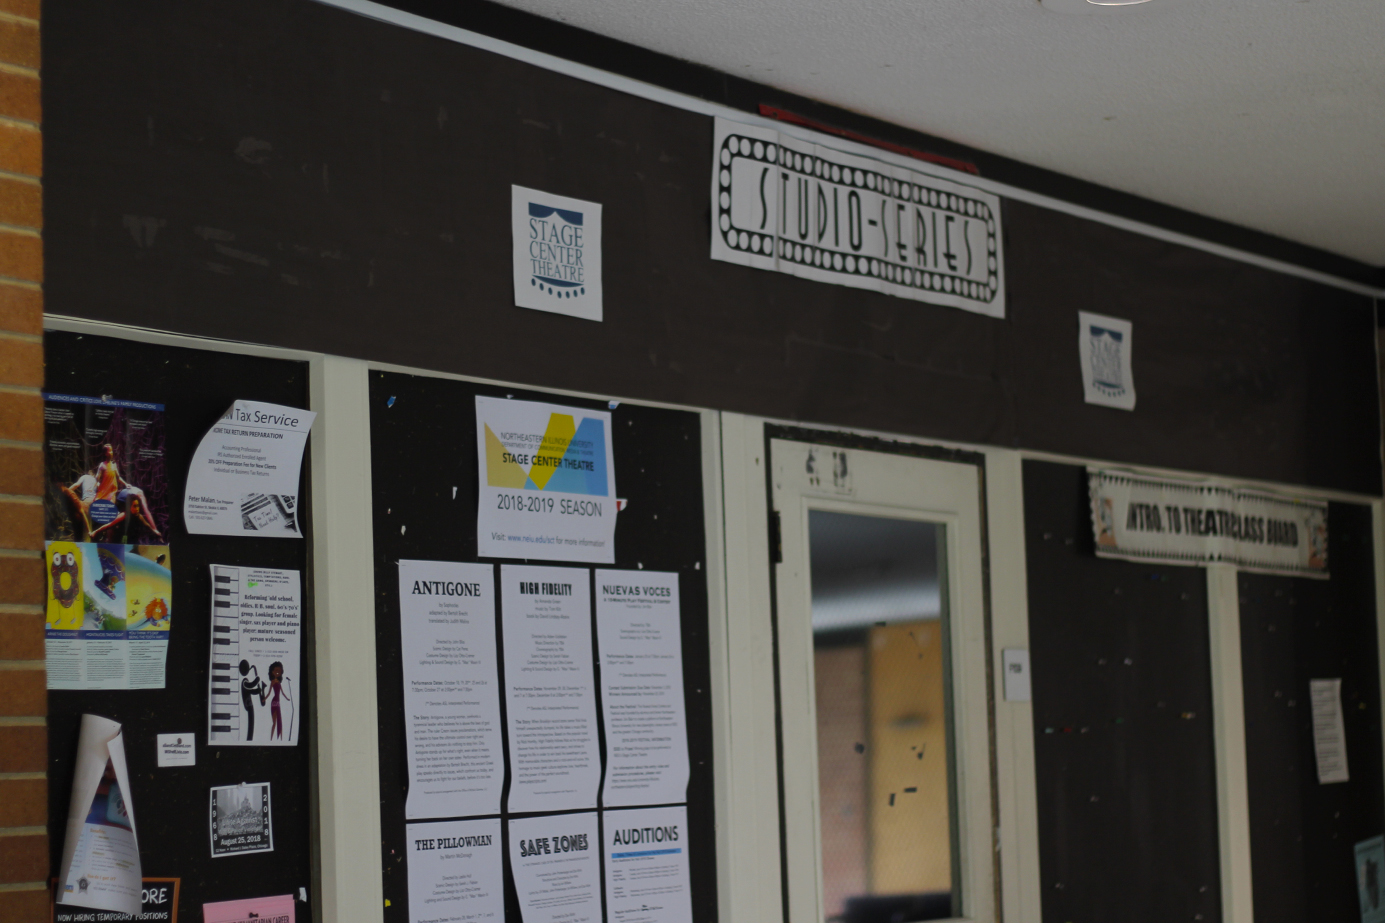 Stage Center Theatre is located in Building F, next to Lech Walesa Hall.